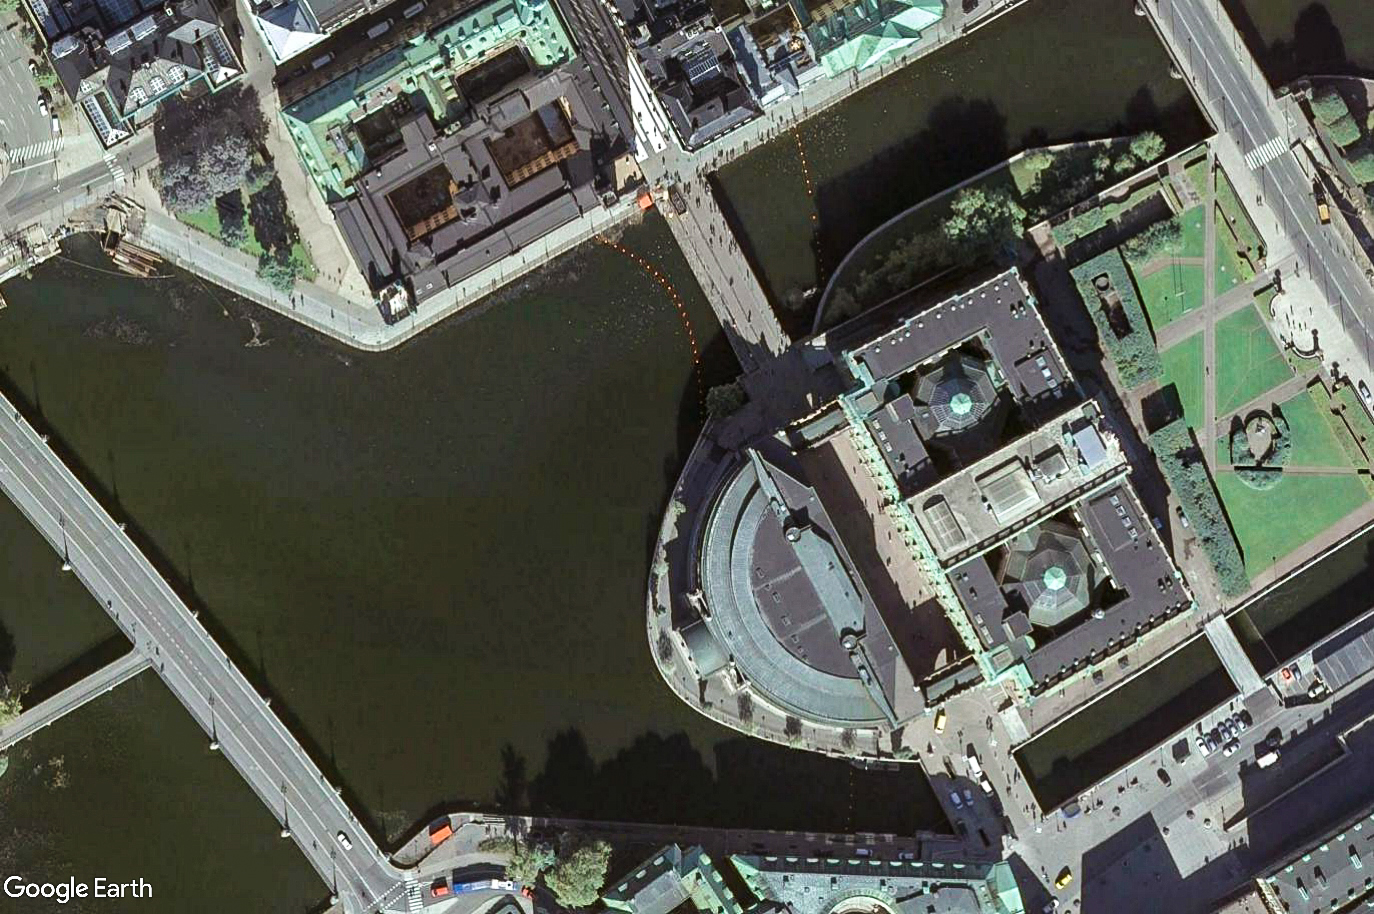 The Swedish Parliament, the Riksdag, sits opposite Rosenbad, the Prime Minister's office, in Stockholm